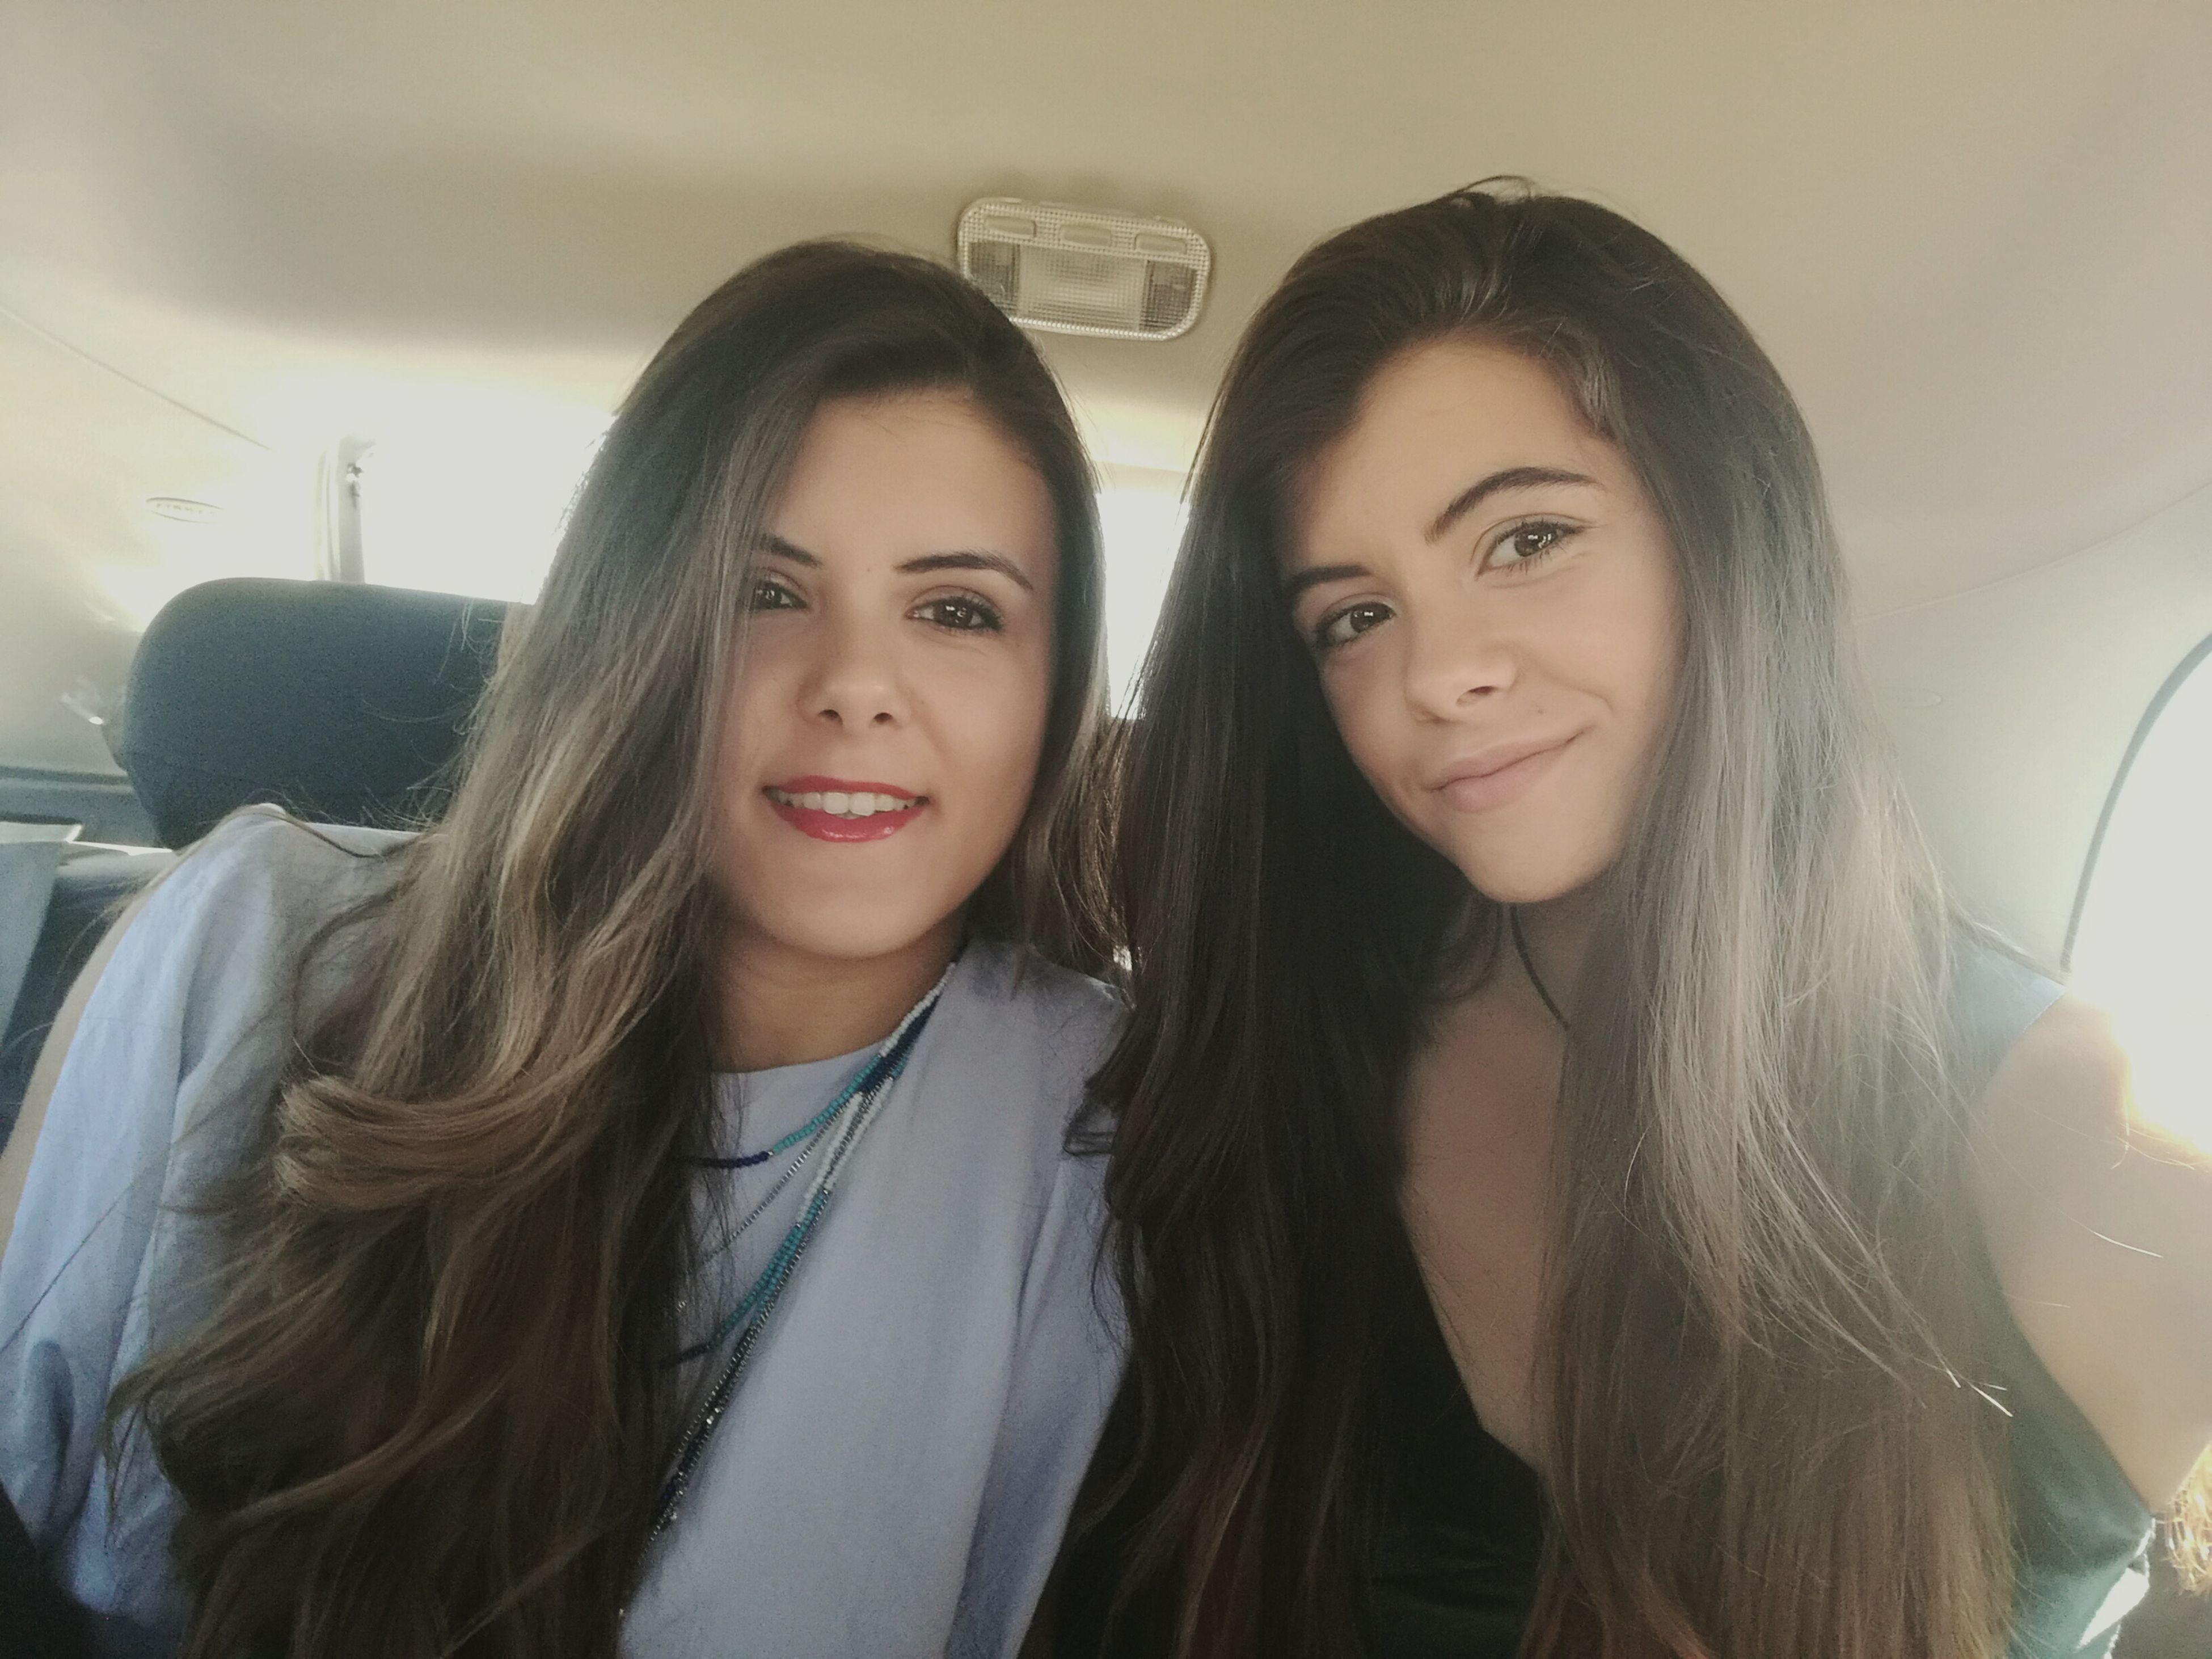 smiling, looking at camera, happiness, young adult, two people, transportation, young women, real people, portrait, long hair, front view, friendship, togetherness, indoors, close-up, day